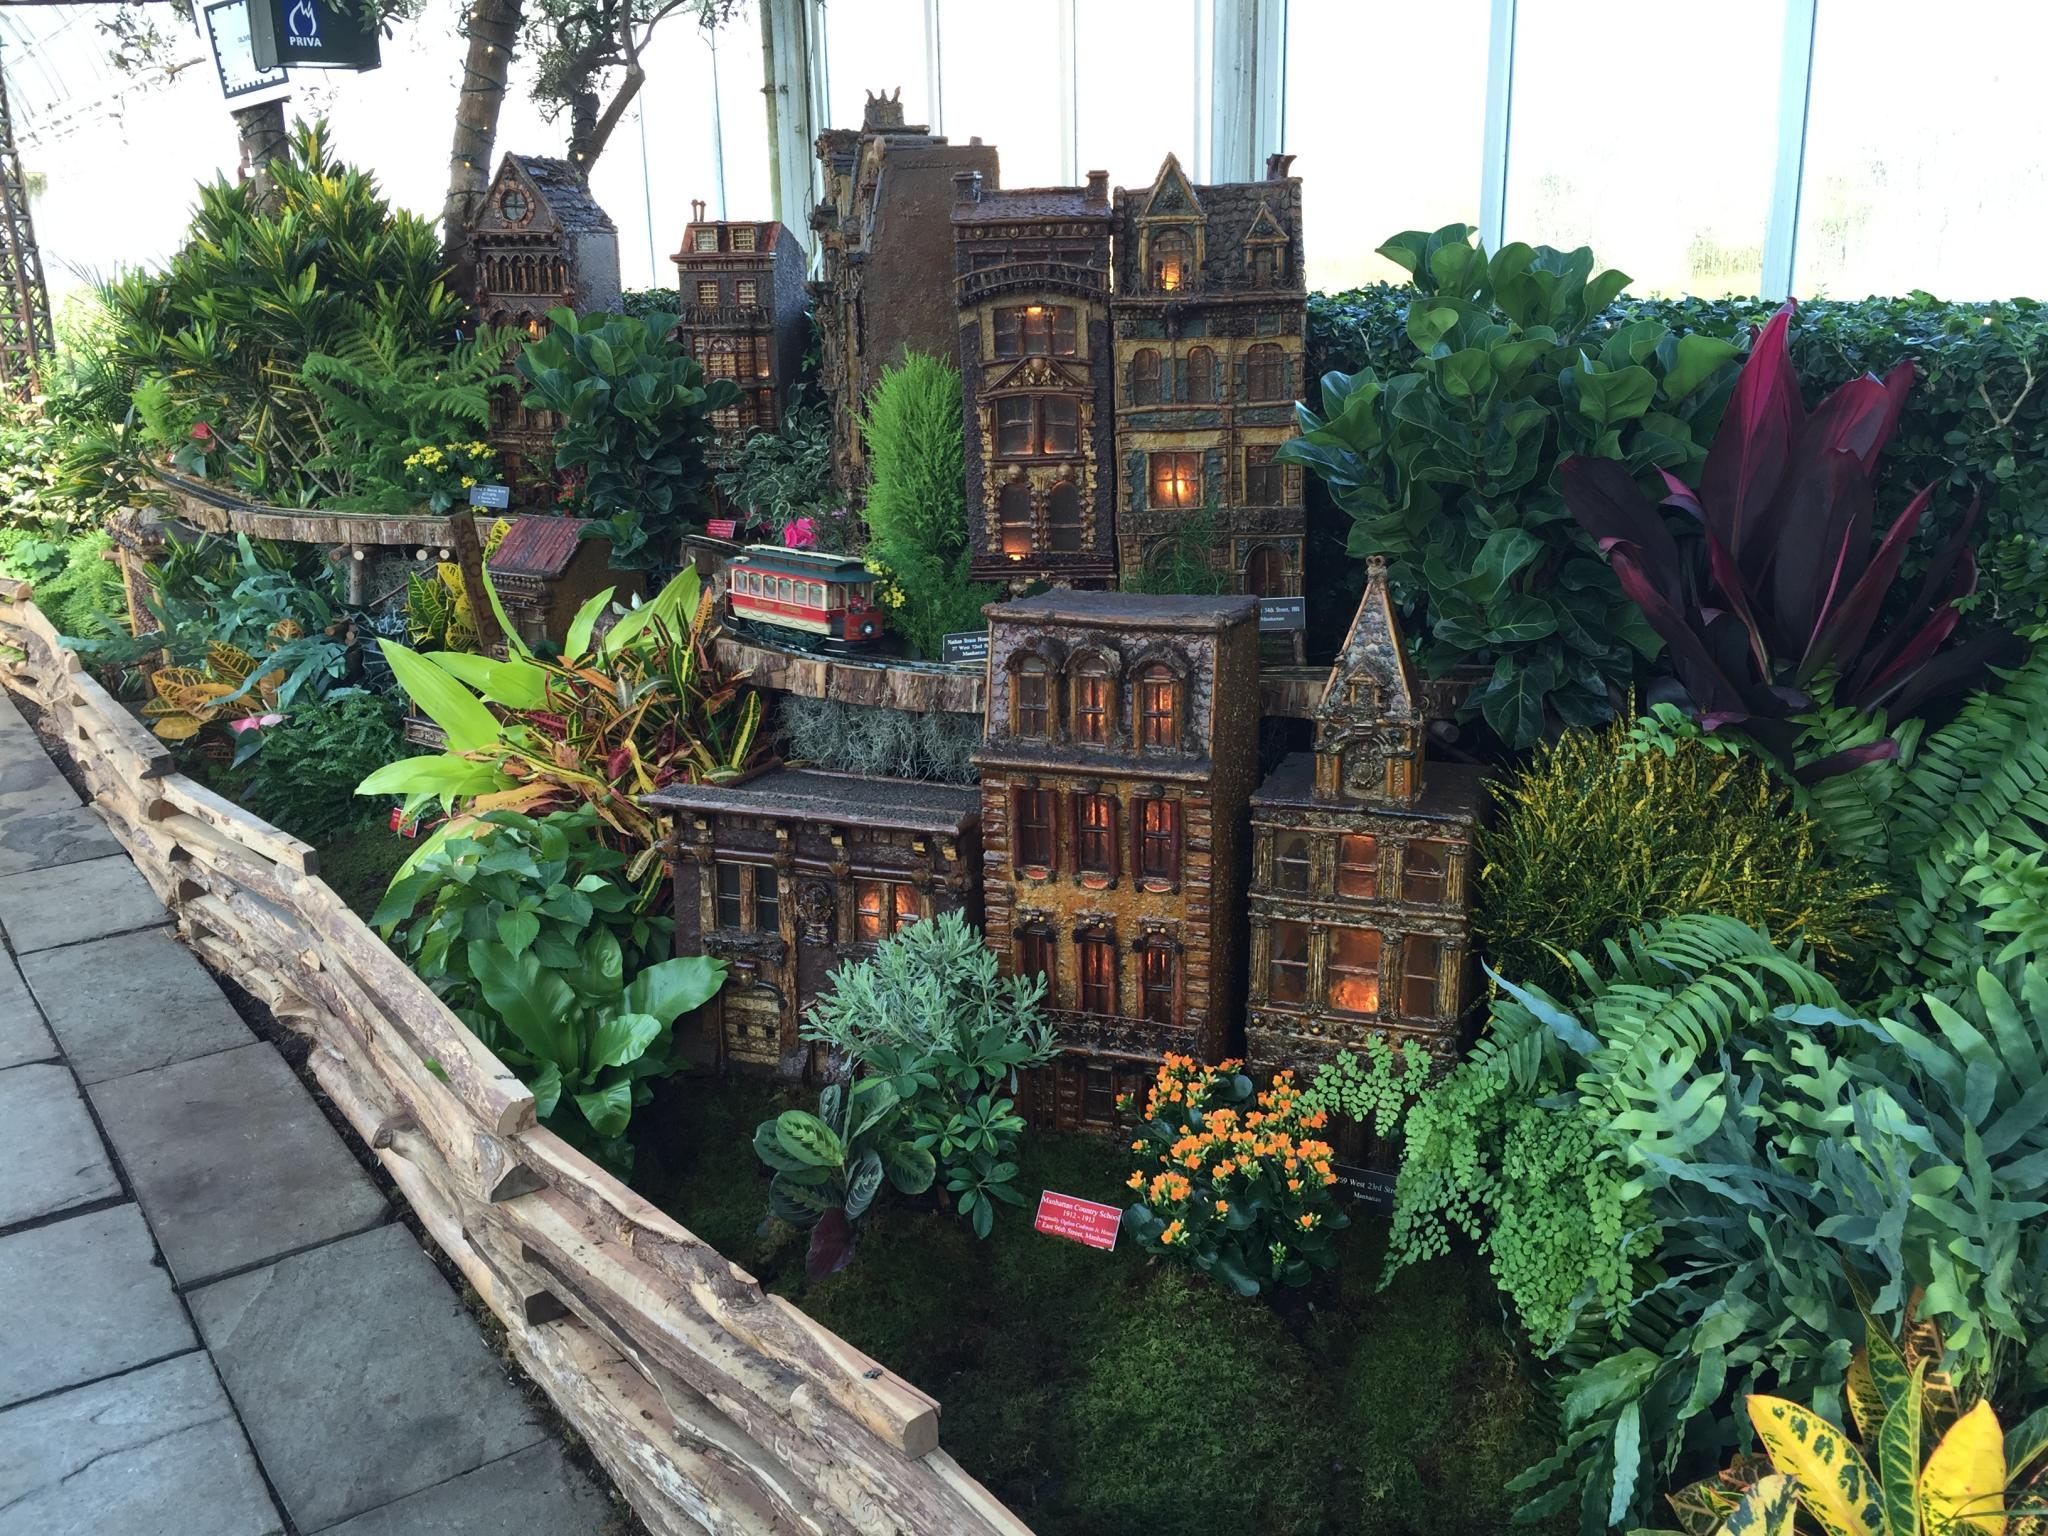 The Holiday Train Show At The New York Botanical Garden Day 1